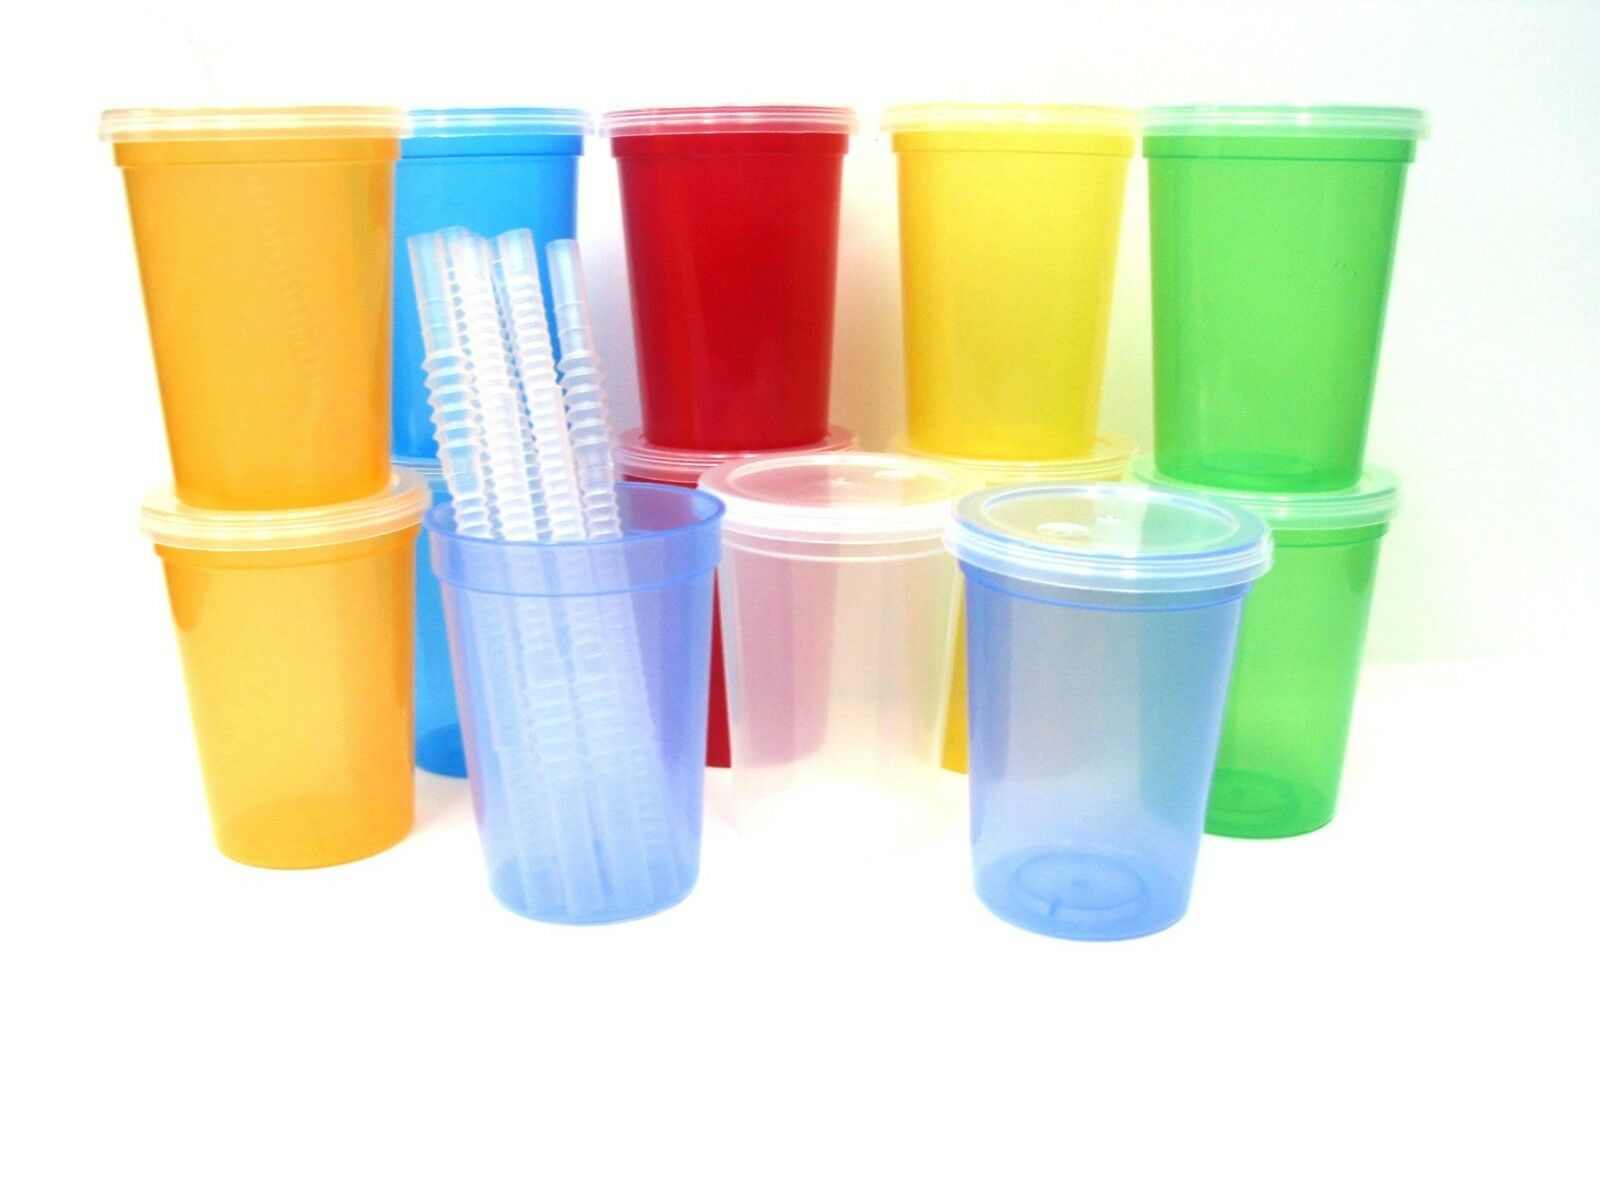 50- 50- 50- Small 12 Oz Kids Translucent Cups Glasses Lids Straws Mfg USA Lead Free d43207